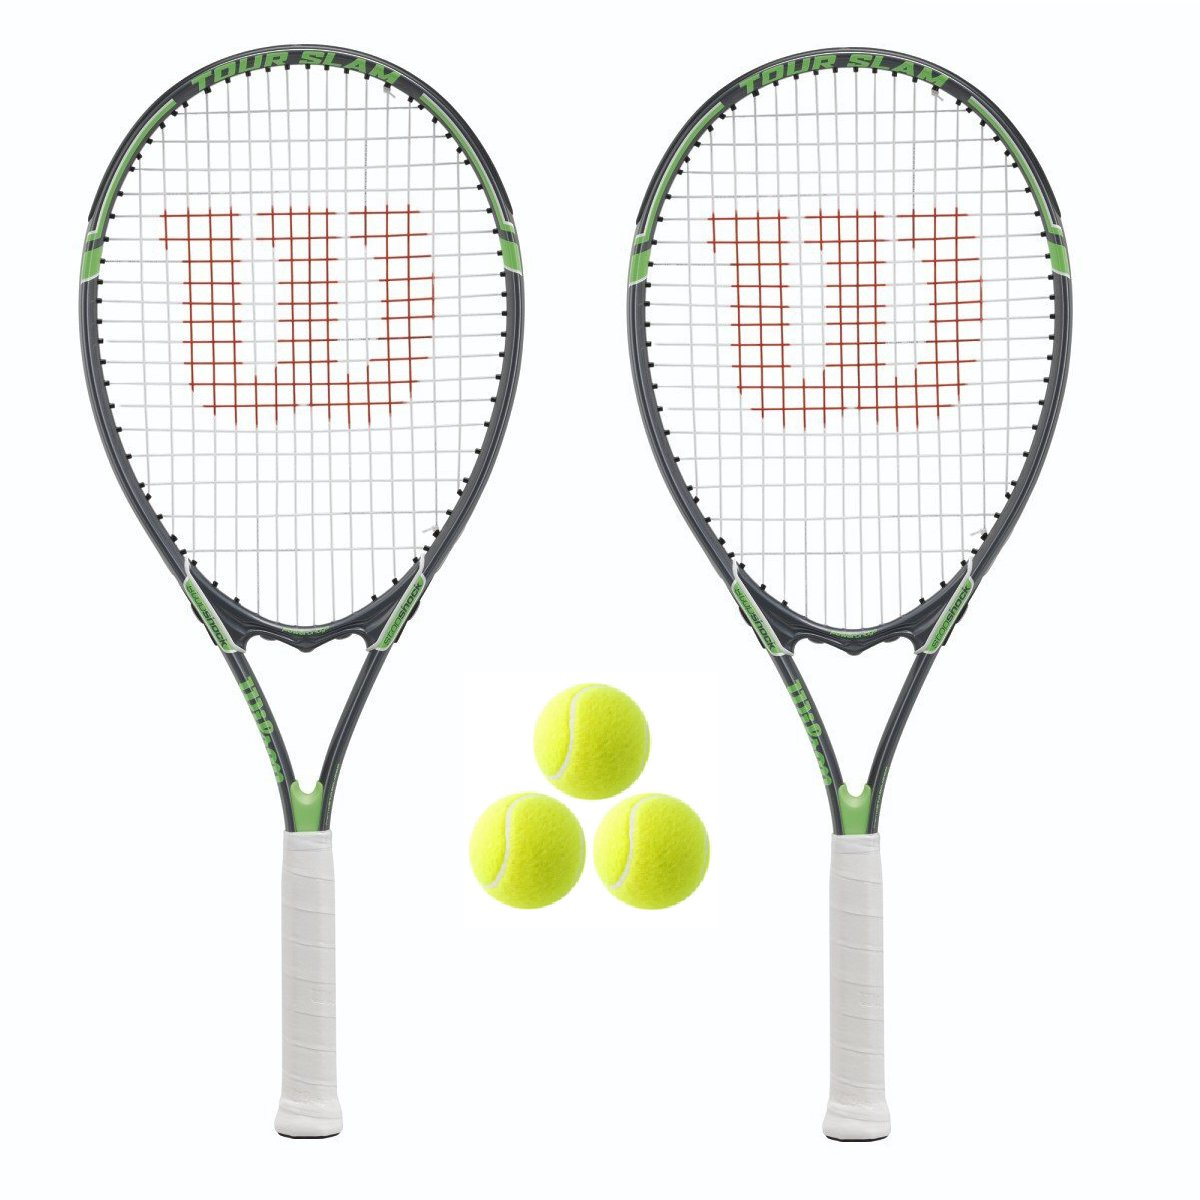 2 x + Wilson Tour Tennis Rackets + Covers With 3 Rackets Strap + 3 Tennis Balls RRP 110 by Wilson B0019HLO44, ガーディアン:8a889150 --- cgt-tbc.fr